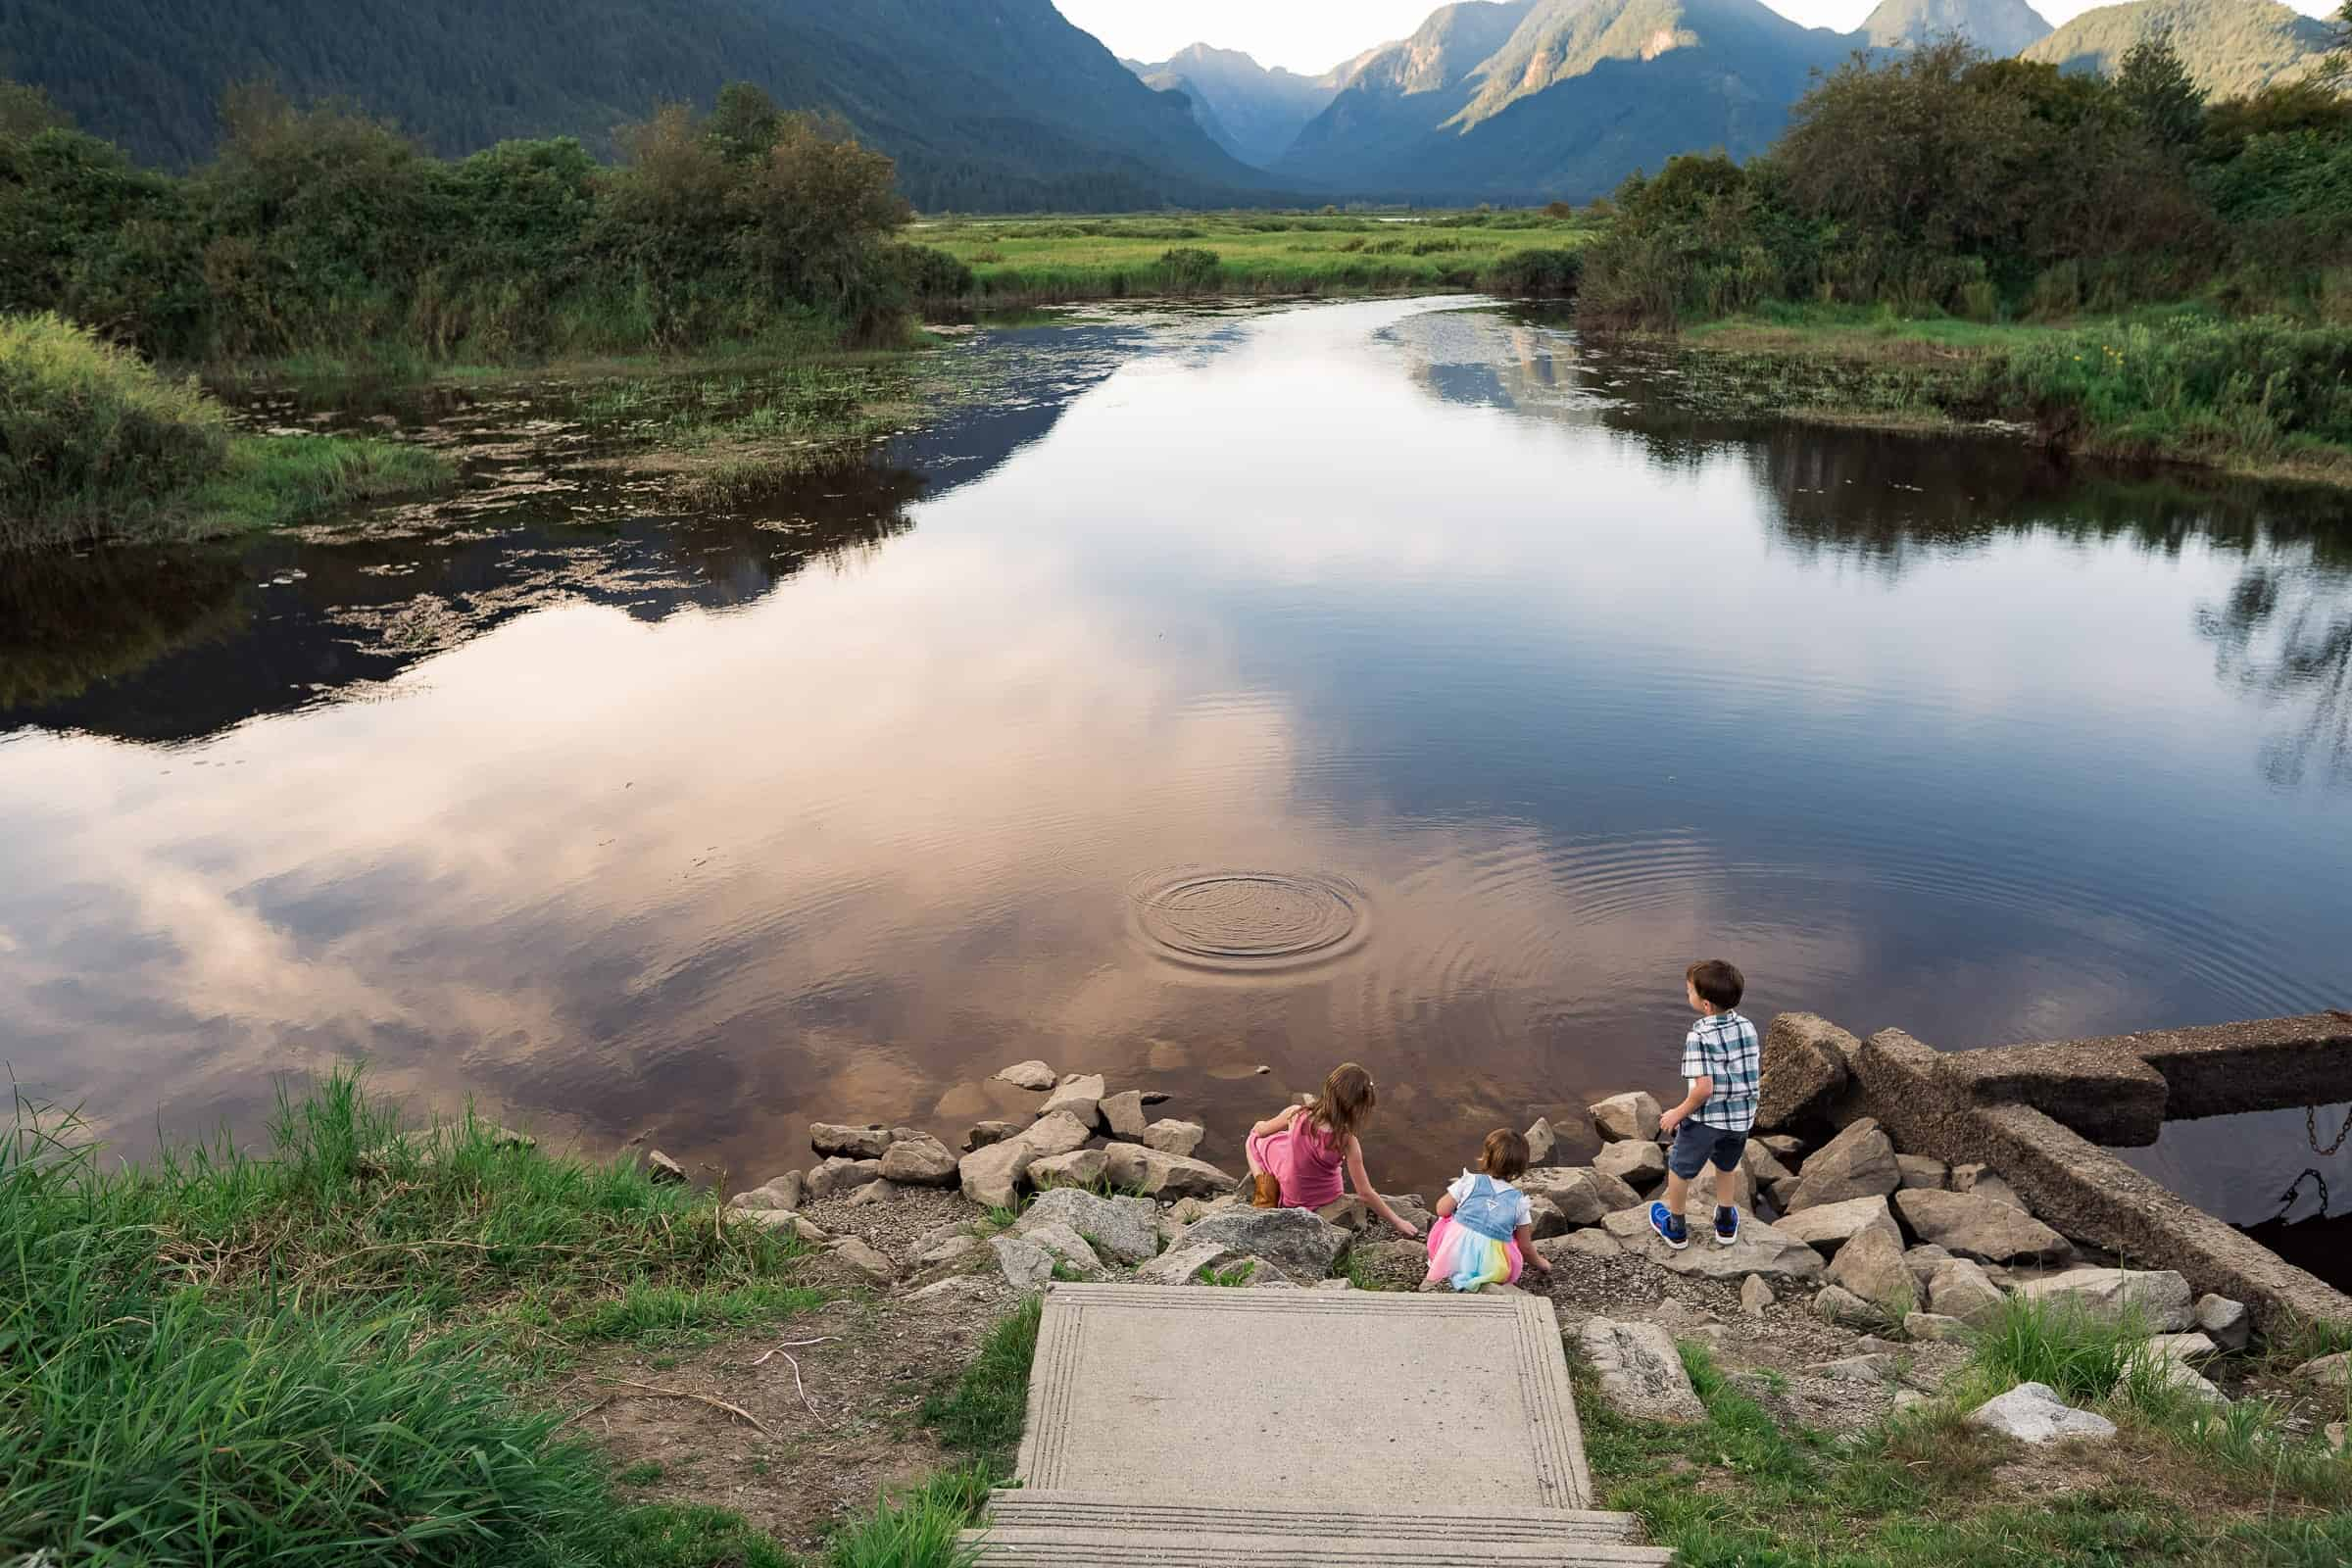 three kids throwing stones in a lake with mountains in the background